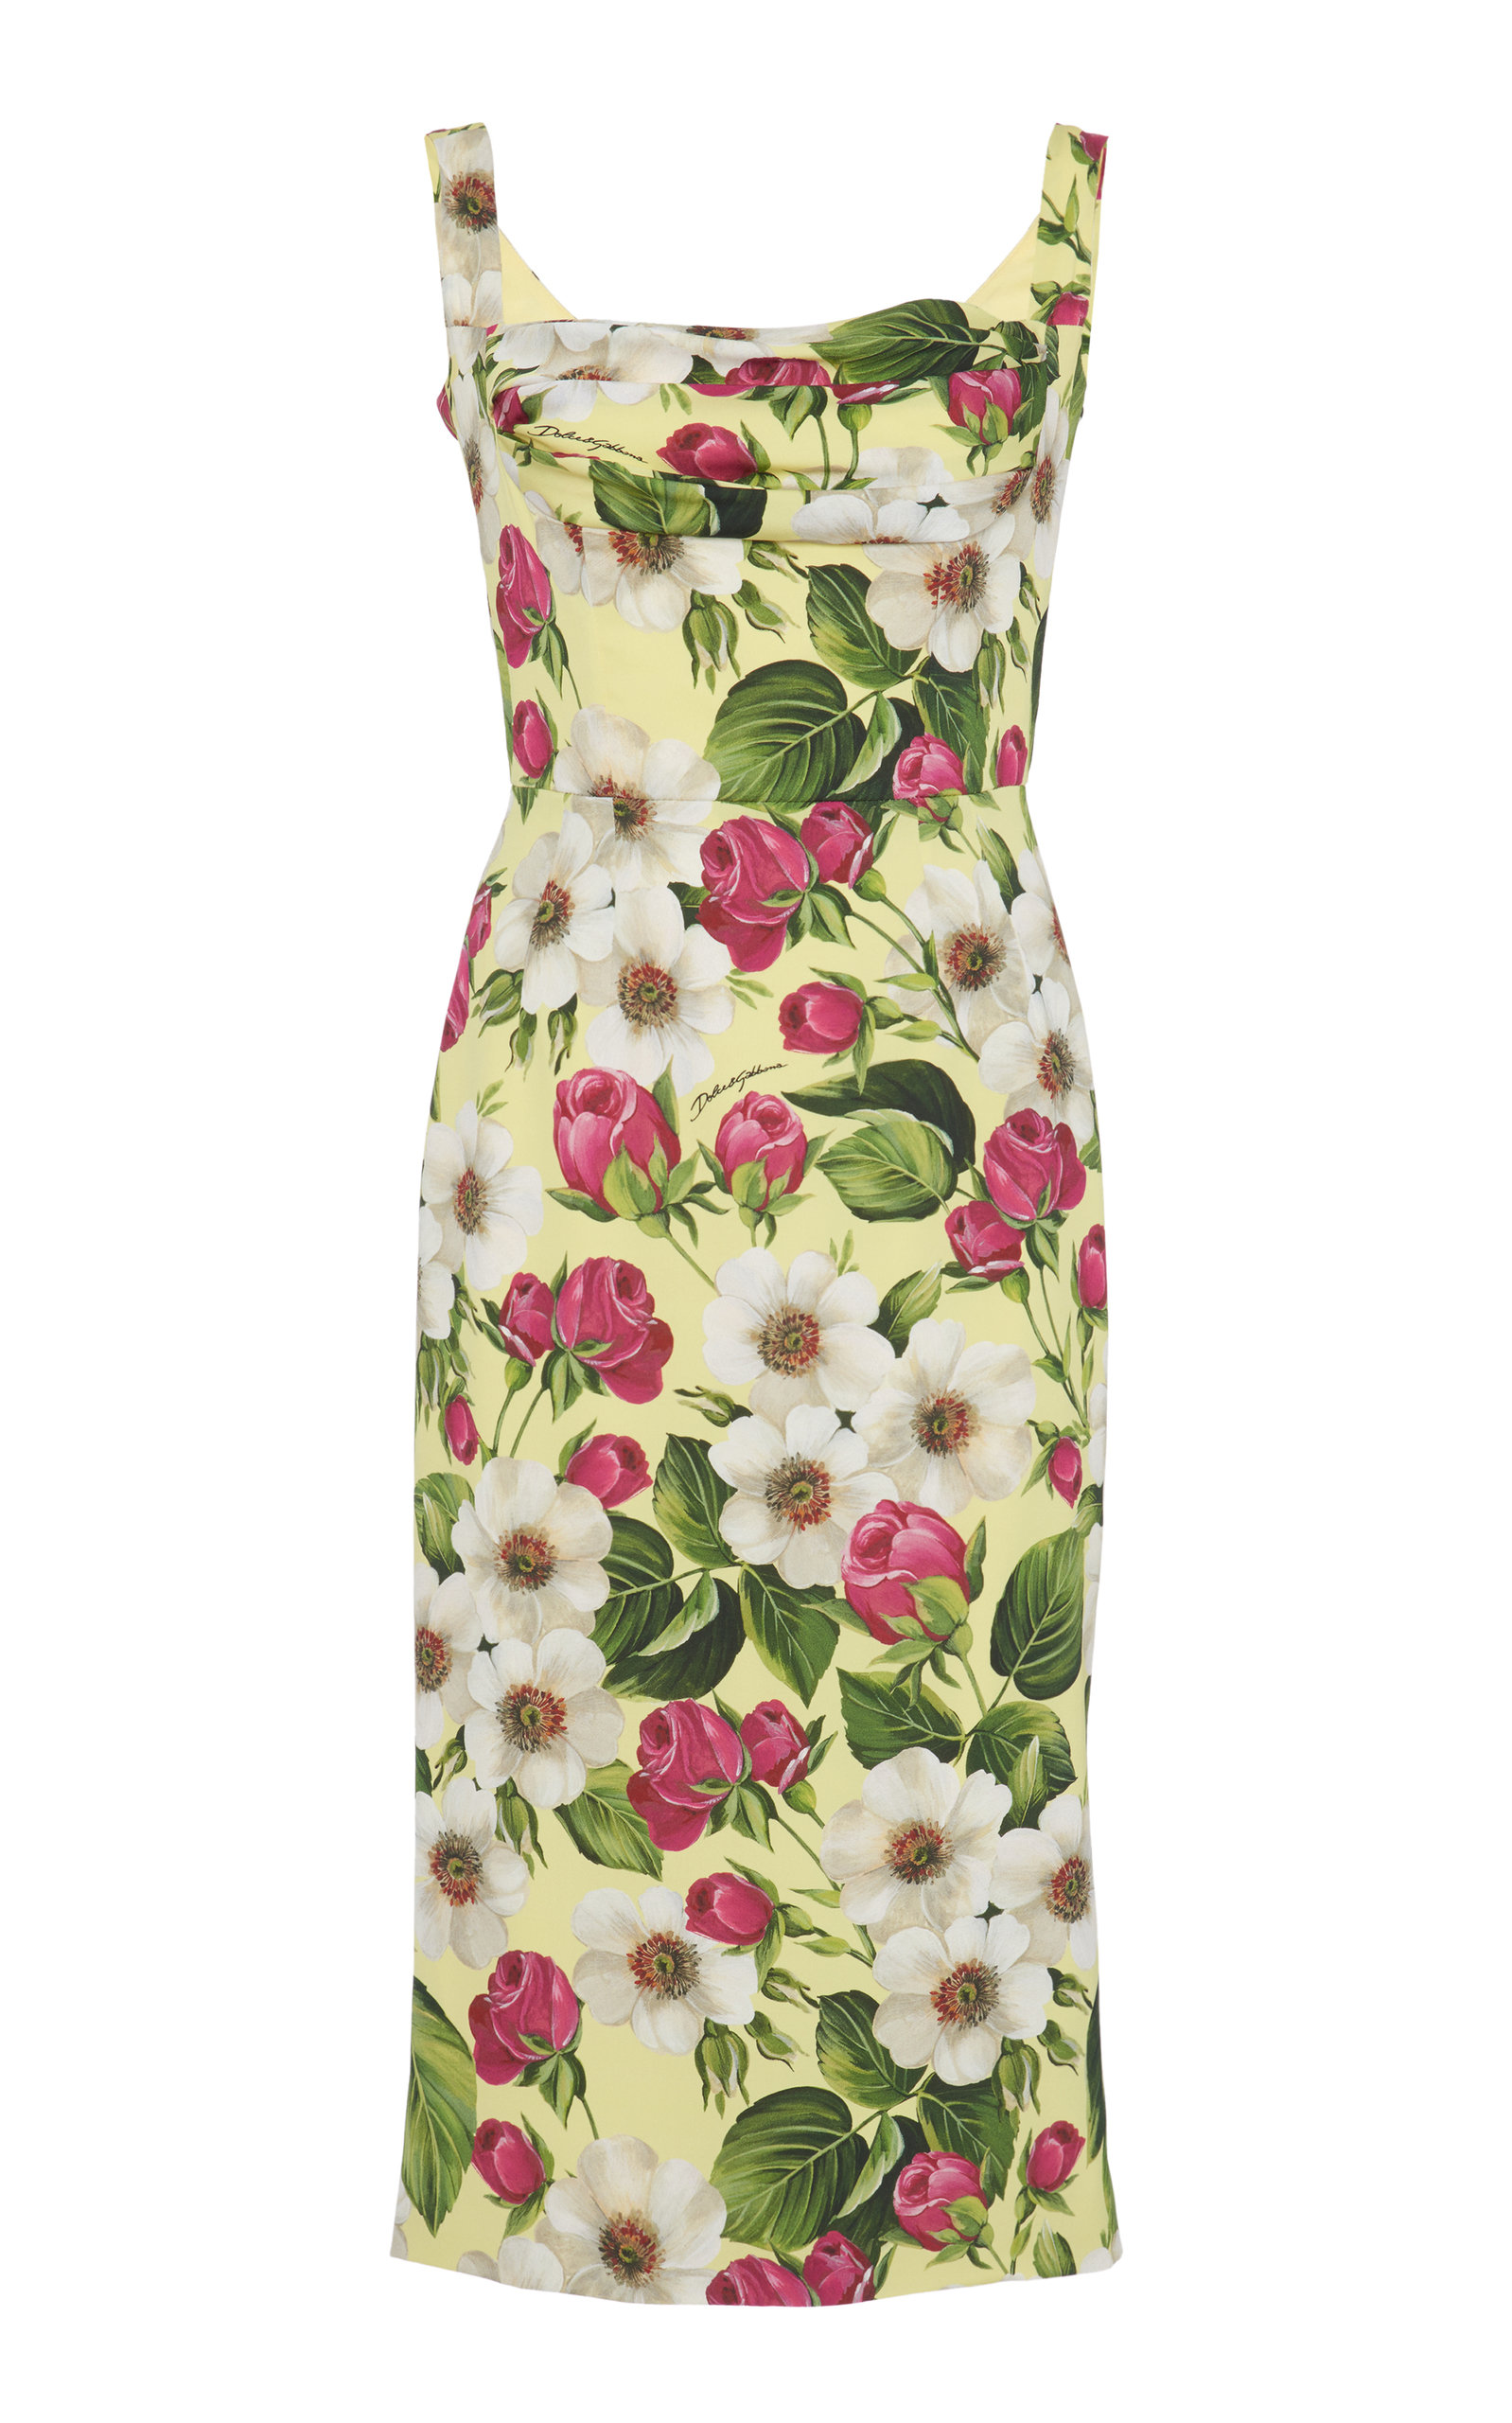 Buy Dolce & Gabbana Floral-Print Square-Neck Stretch-Silk Dress online, shop Dolce & Gabbana at the best price